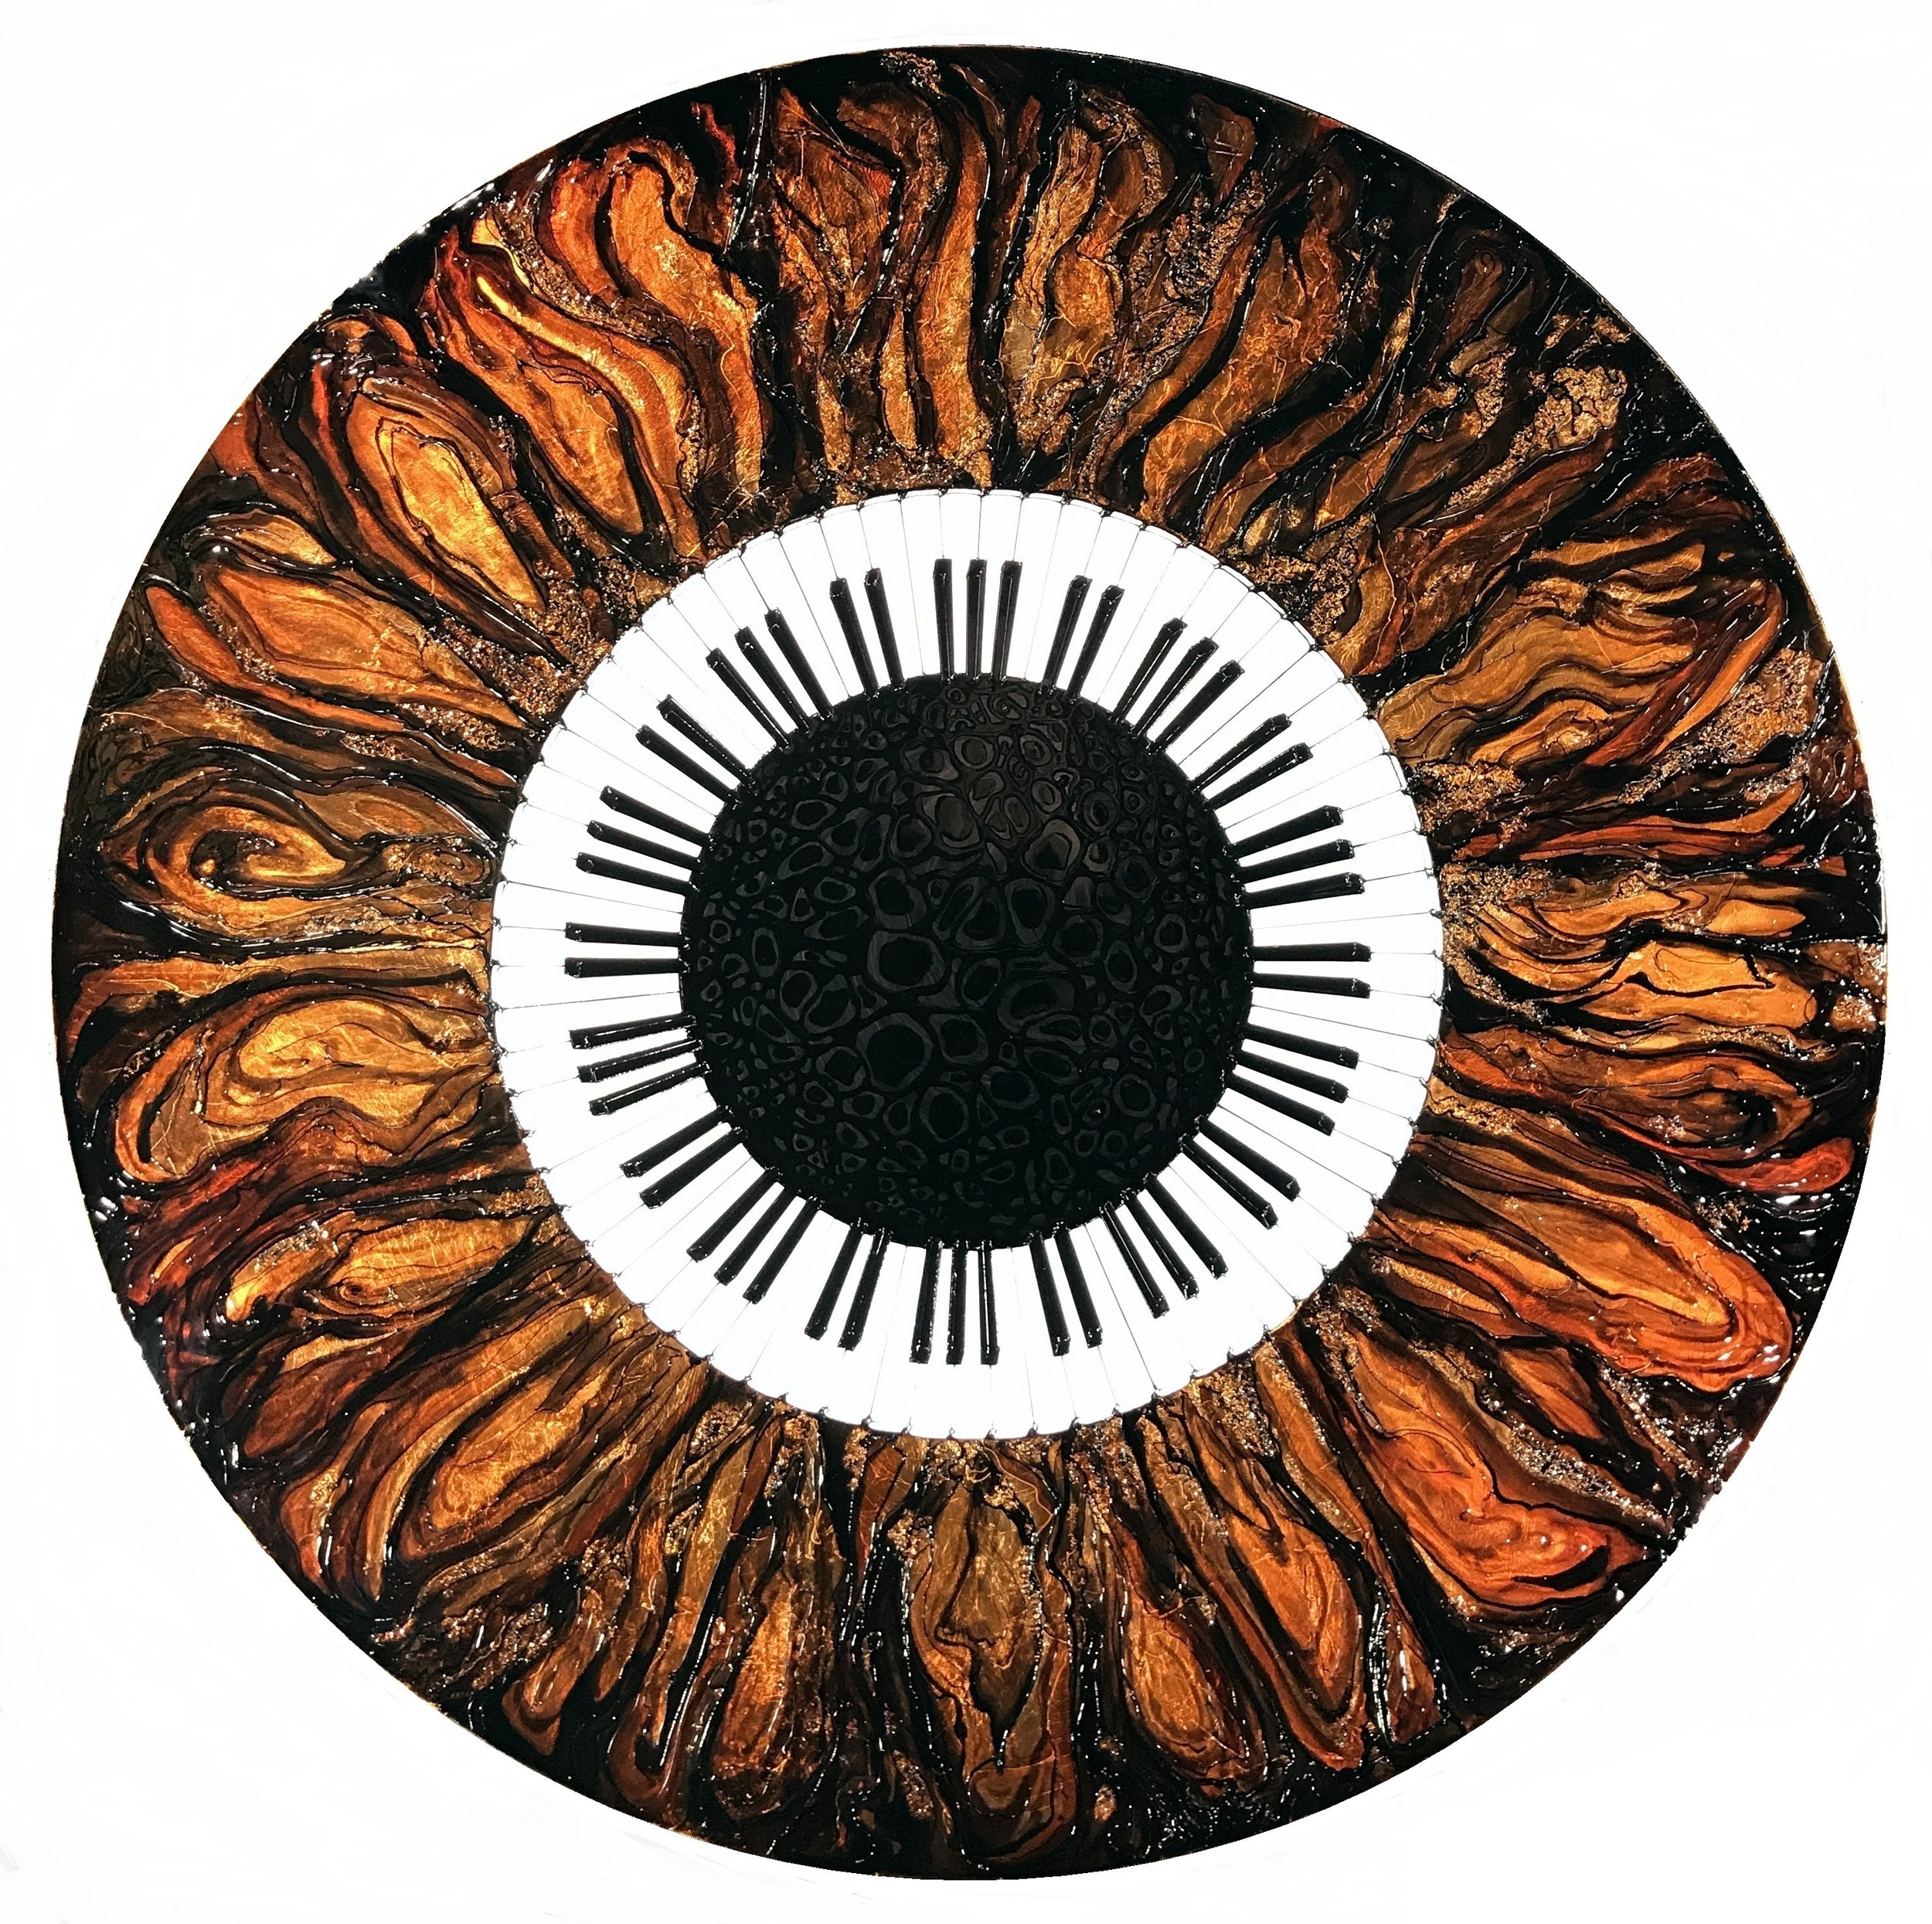 Living-Eye-Of-Life's-Collection-Nr.V-Your-Eyes-Touch-on-Me-Melodies-Without-End-by-Sonia-Domingues.JPG